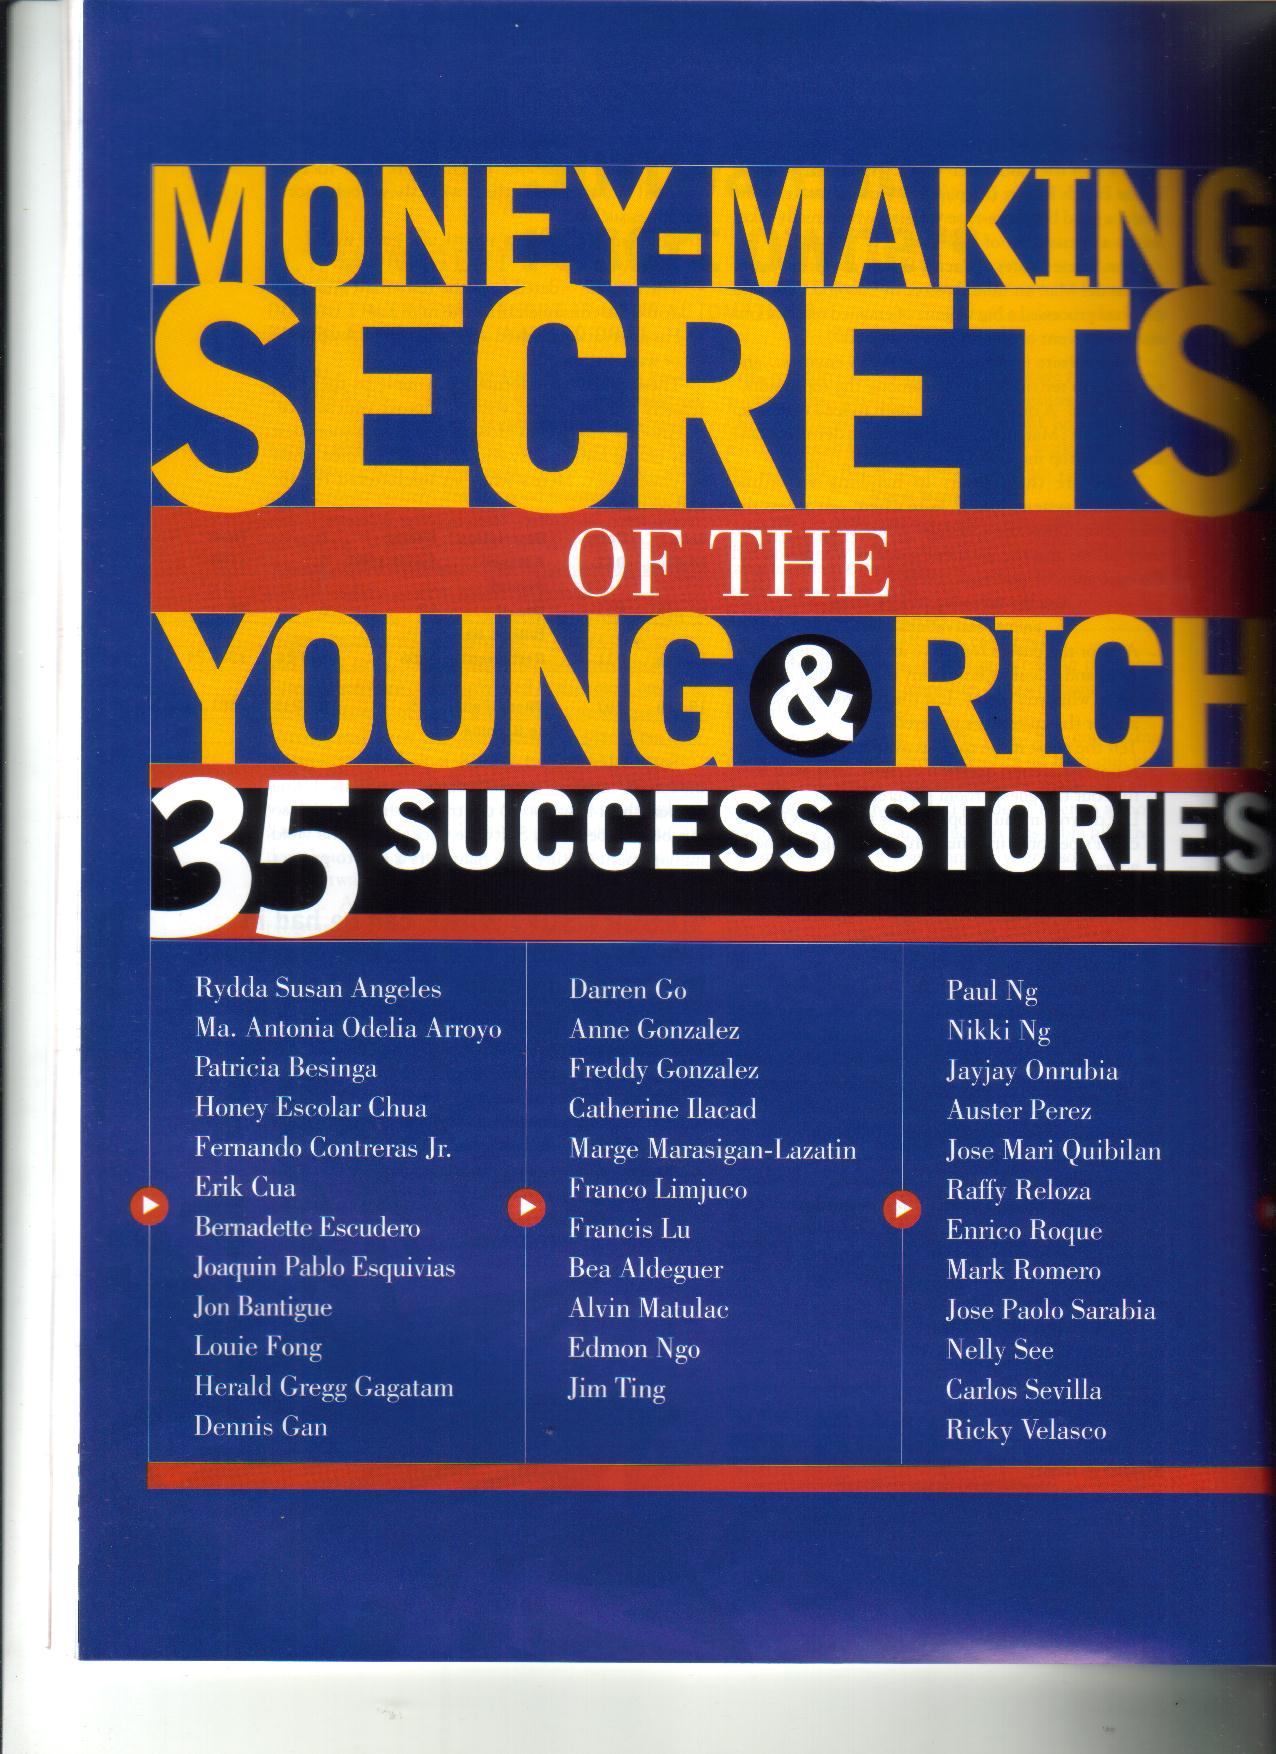 4-06  Making-Making Secrets of the Young & Rich